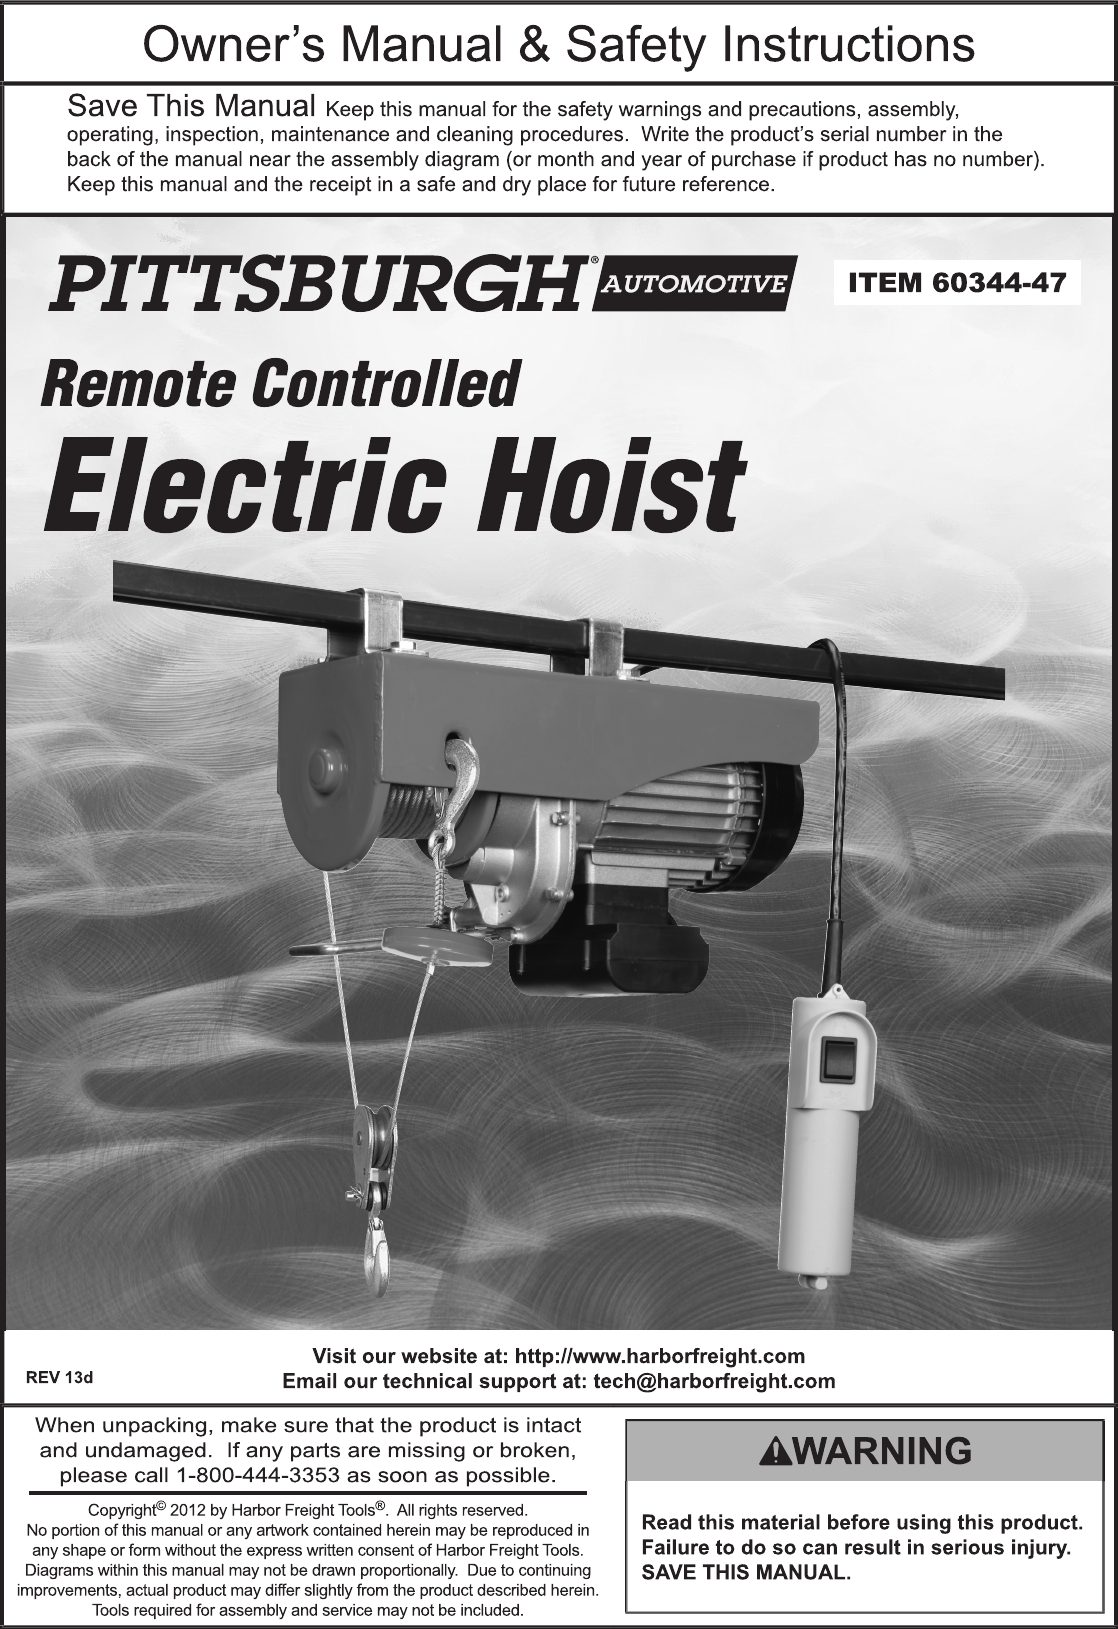 HarborFreight1100LbElectricHoistWithRemoteControlProductManual723650.965280962 User Guide Page 1 harbor freight 1100 lb electric hoist with remote control product manual